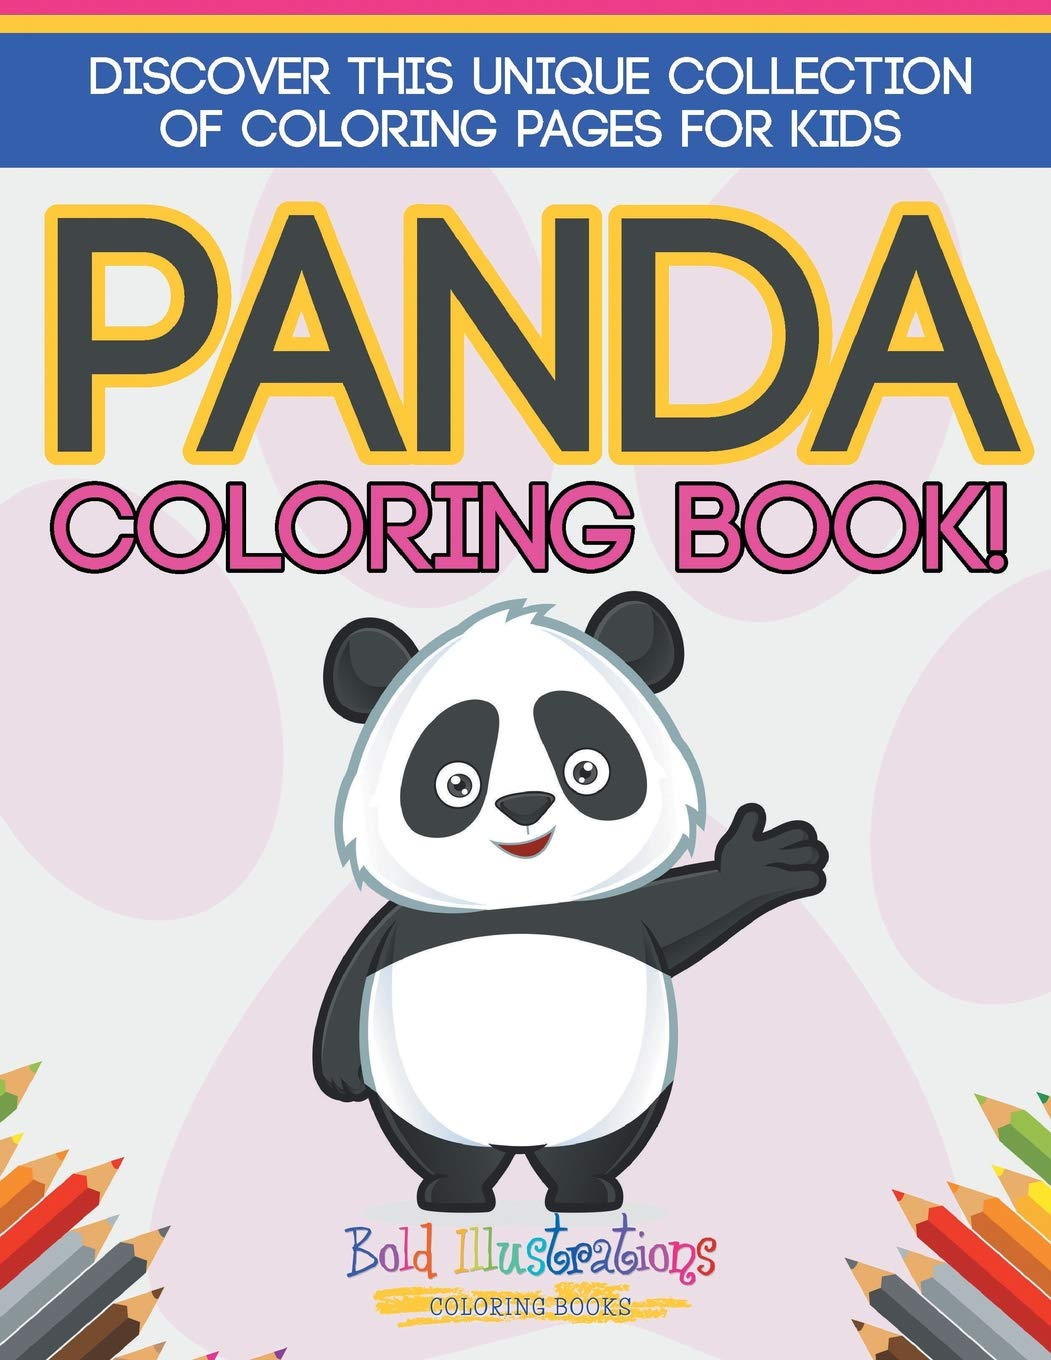 - Panda Coloring Book! Discover This Unique Collection Of Coloring